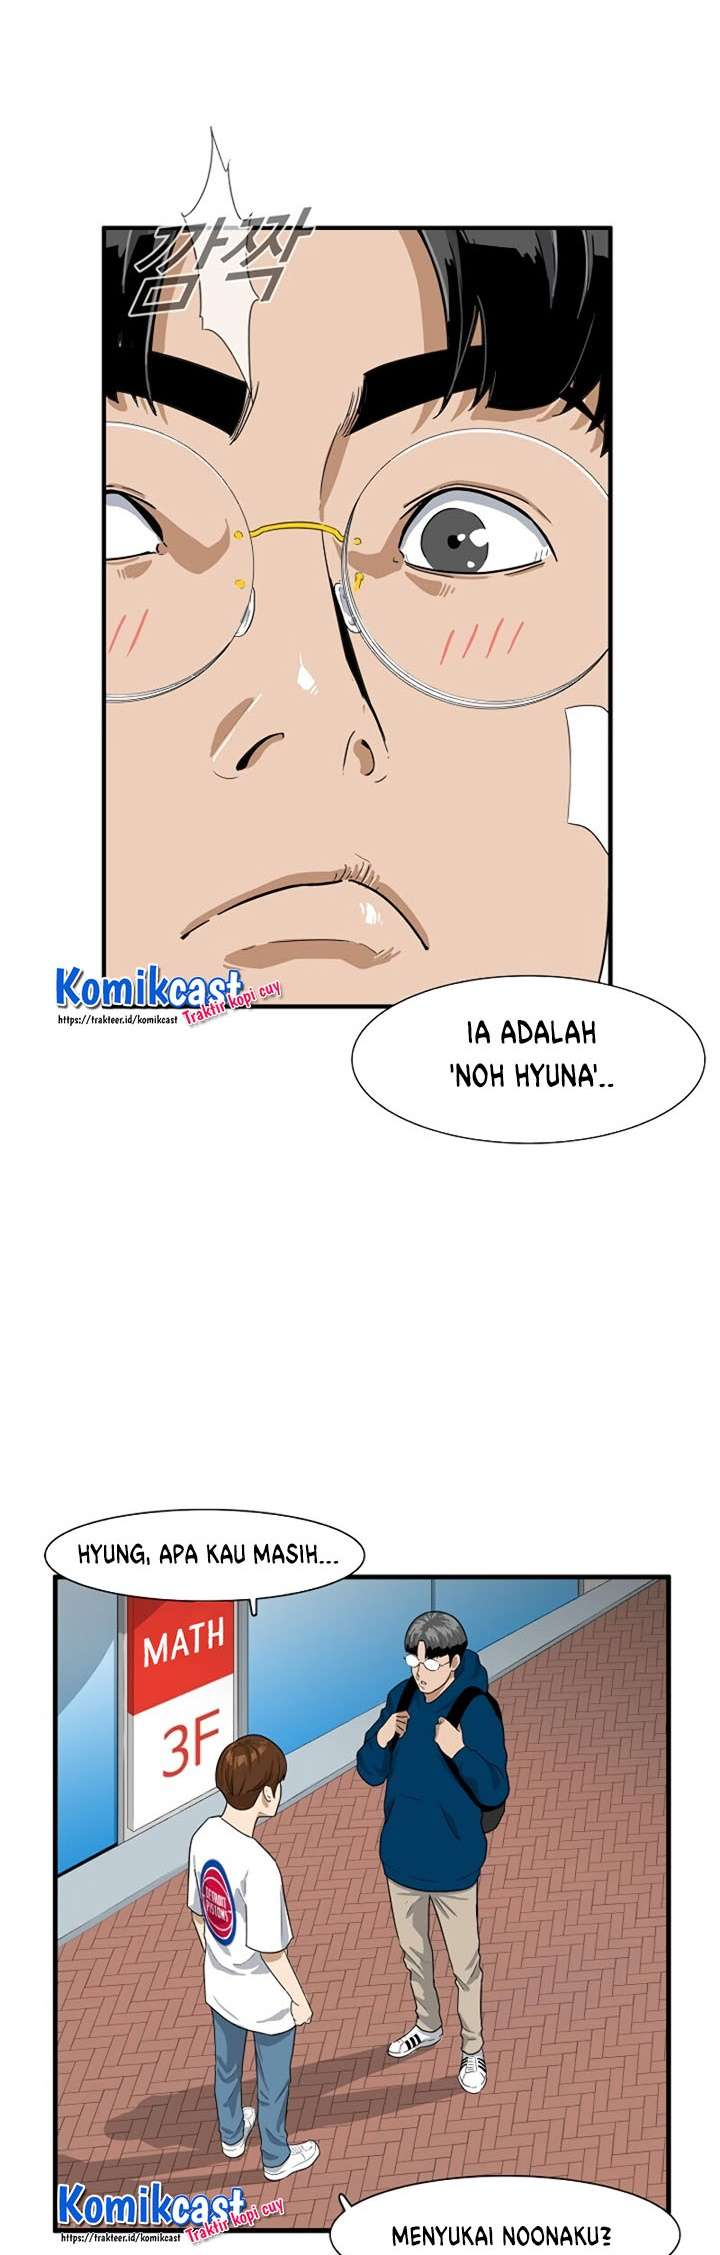 This is the Law Chapter 02 Bahasa Indonesia page 45